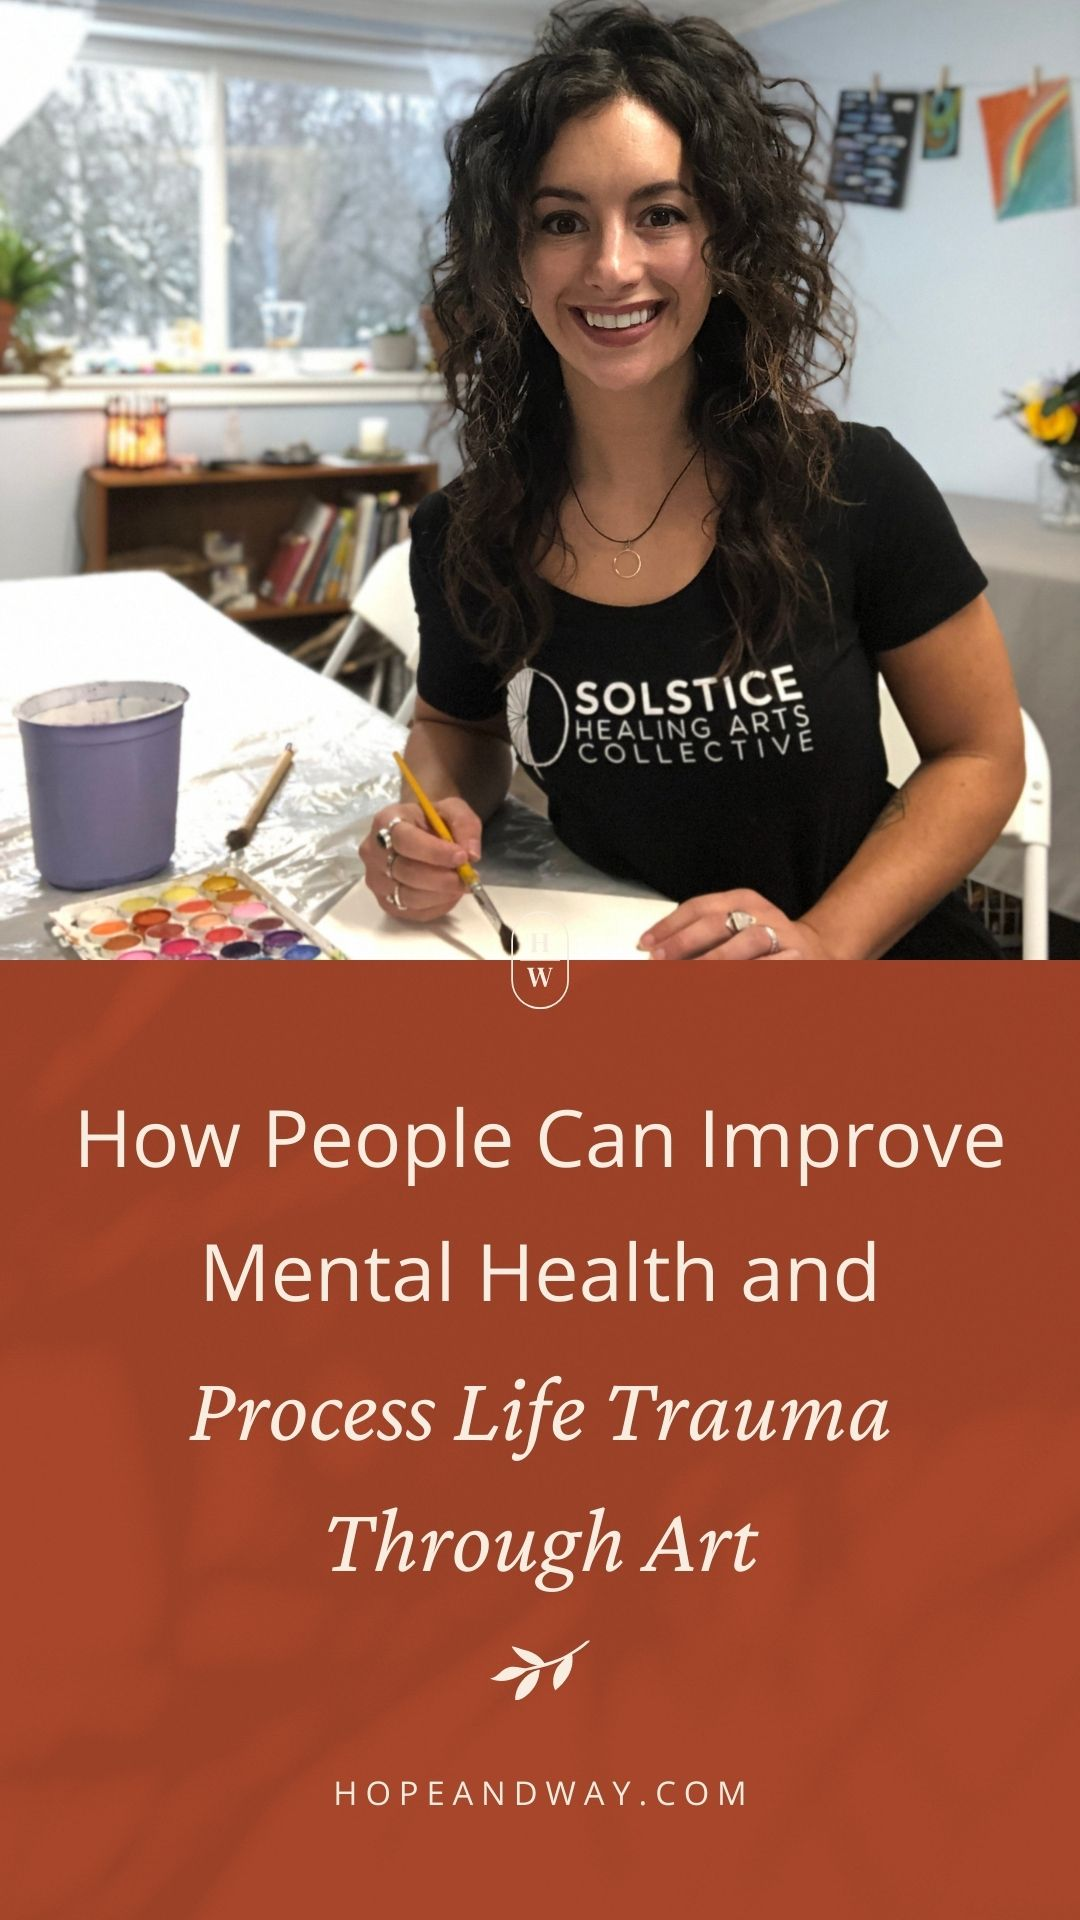 How People Can Improve Mental Health and Process Life Trauma Through Art – Interview with Taylor Beardsall